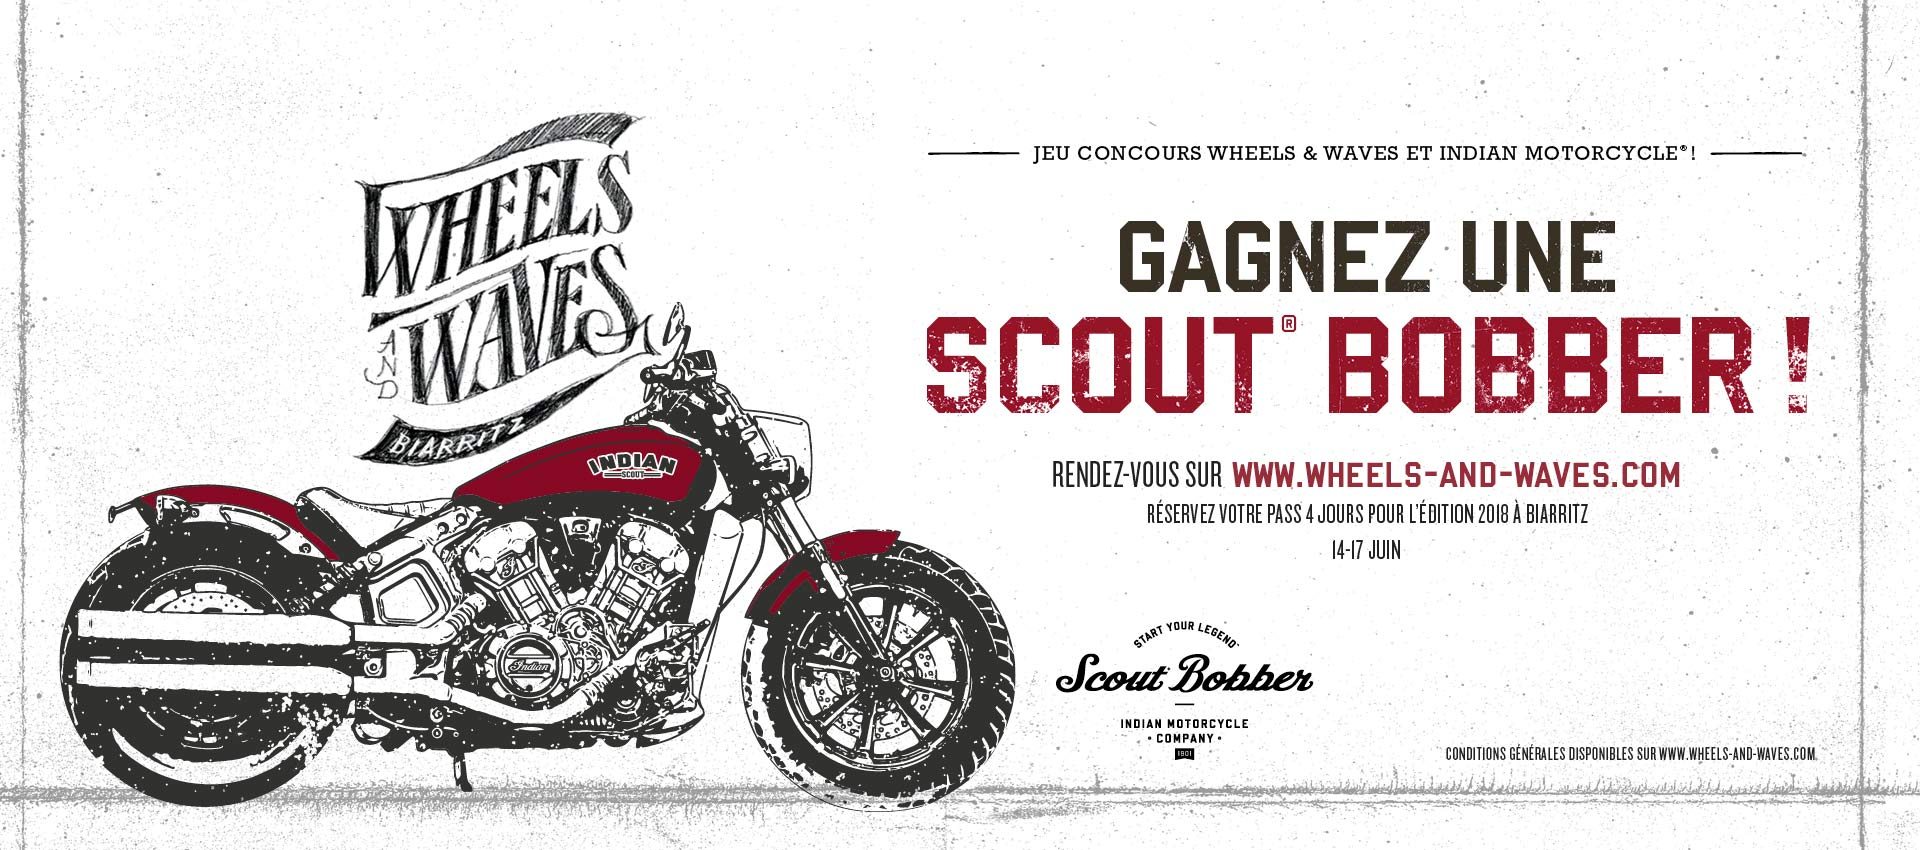 Indian Motorcycle - Win a Bobber - Wheels and Waves